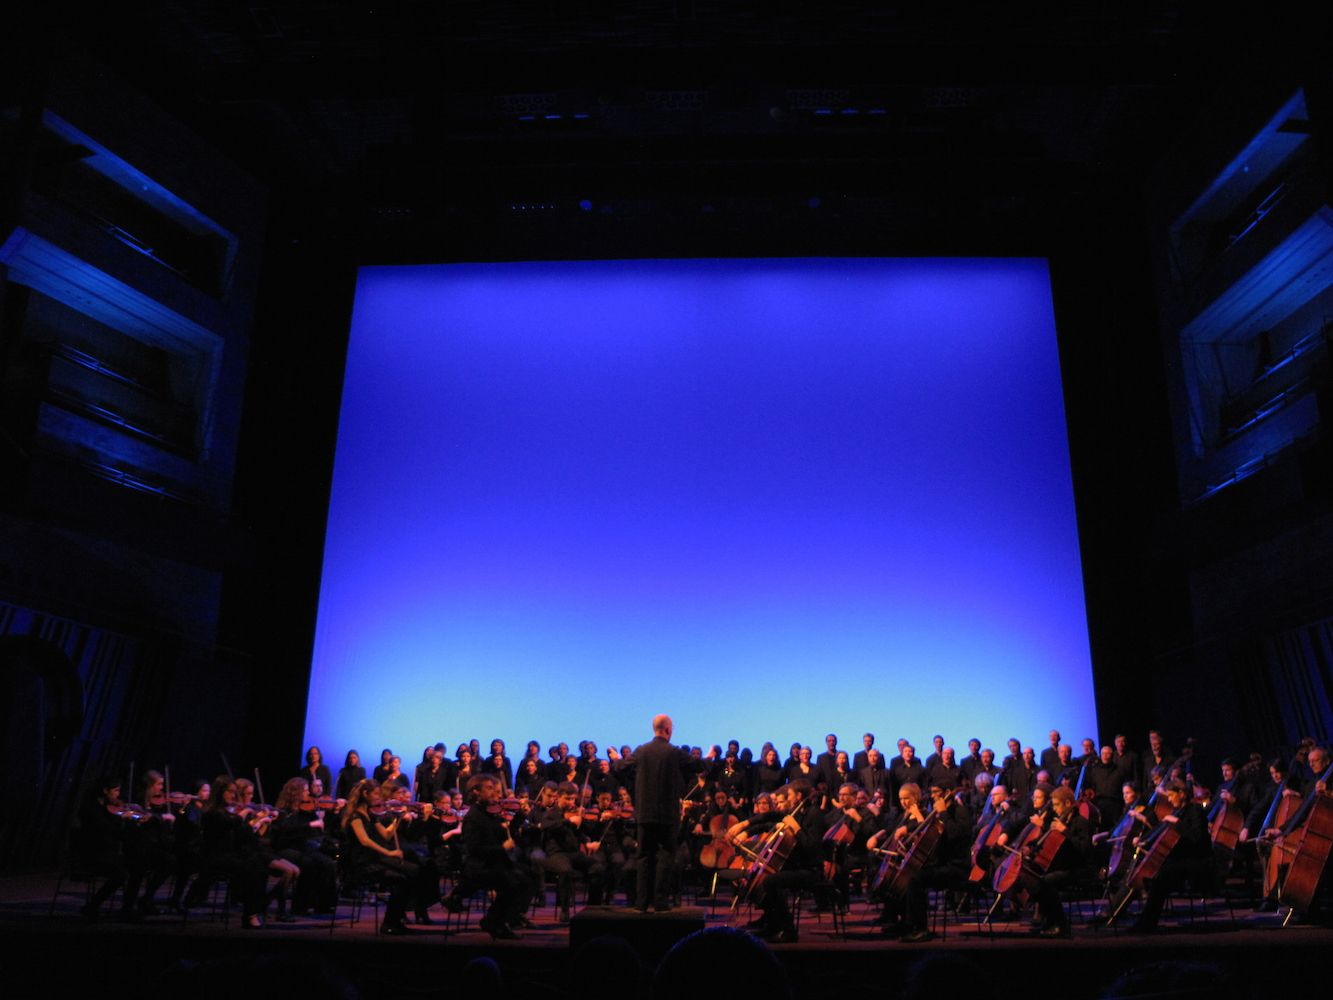 Mono Light - 2014 - Eric MICHEL   Commission for the Monoton-Silence Symphony by Yves Klein, Philharmonique Luxembourg   Photo credit © Eric Michel   more on www.bOssa-talents...